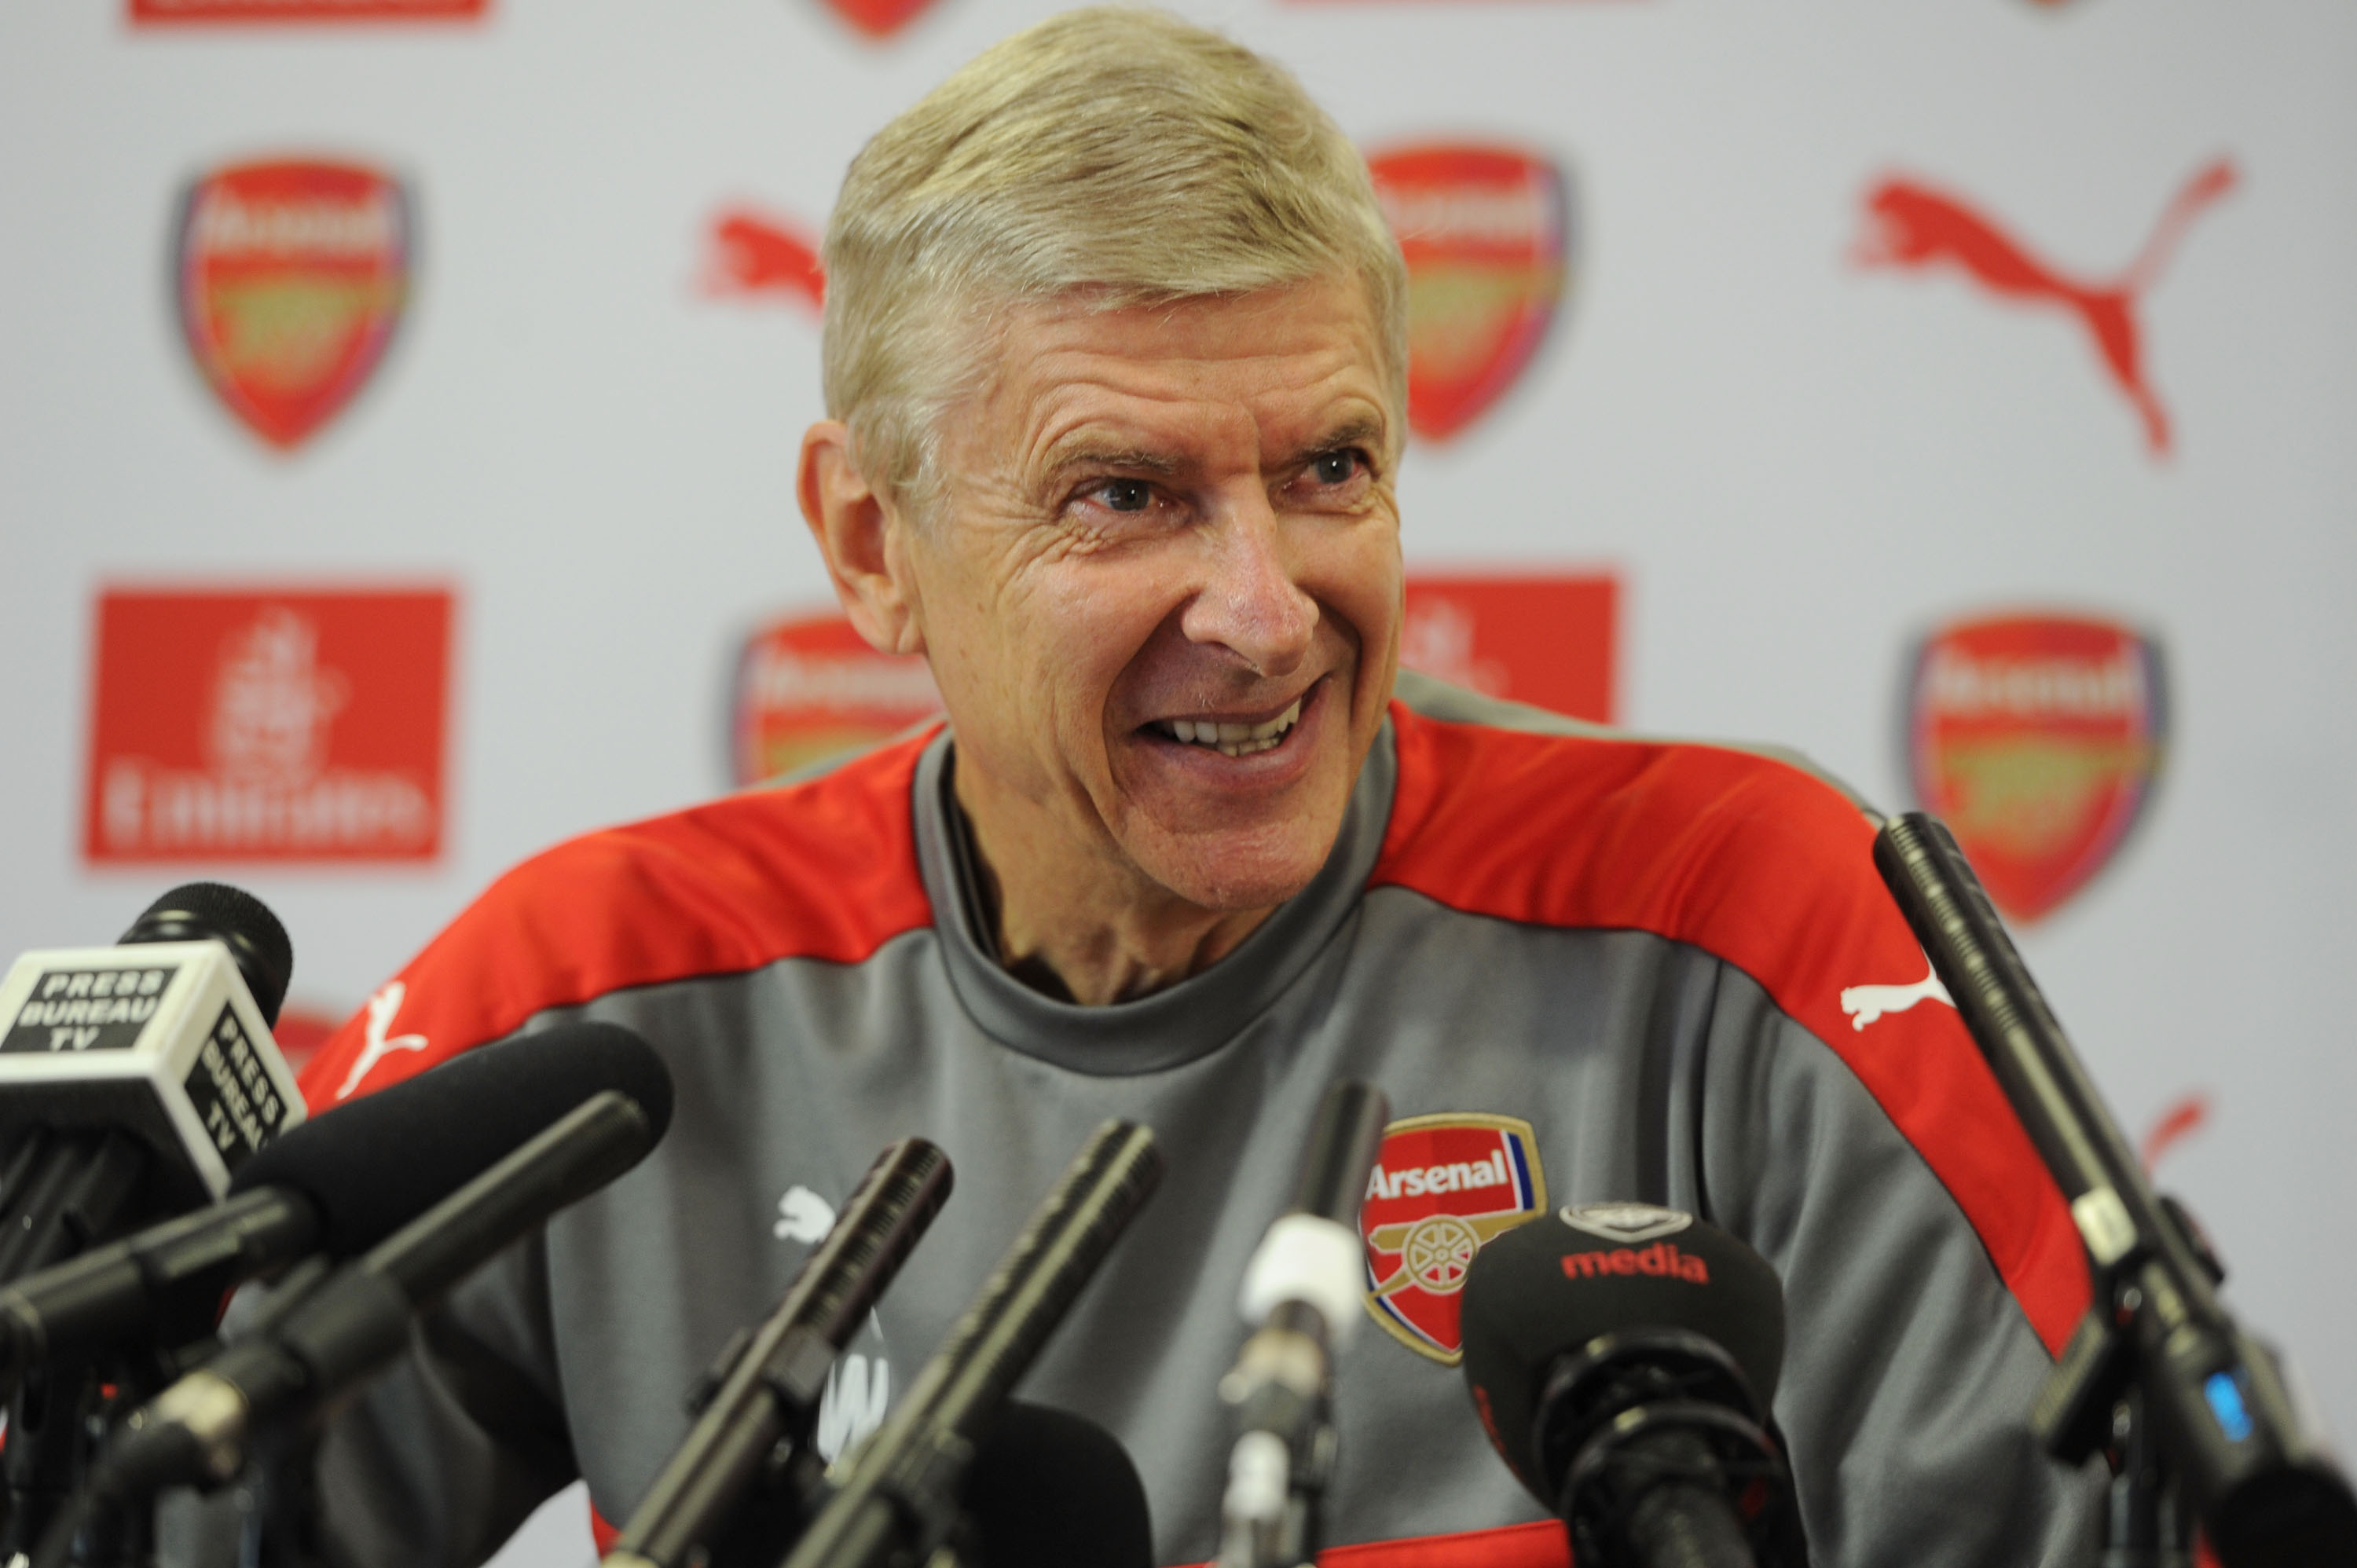 Arsenal boss Arsene Wenger reveals the three best players he's ever coached